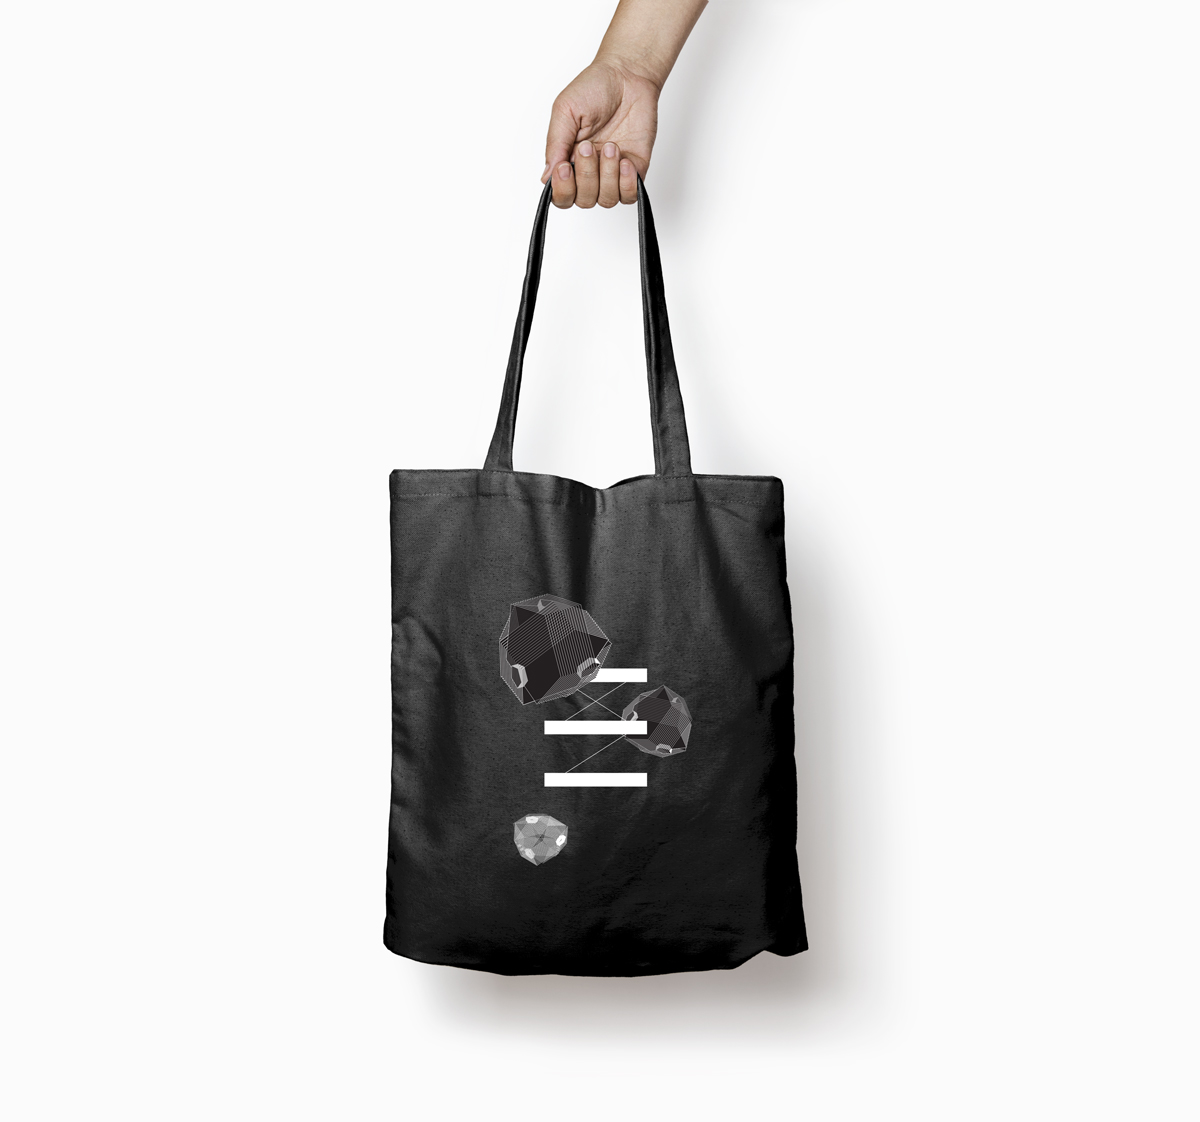 M83_Black_Totebag_Ratio_1400-W.jpg